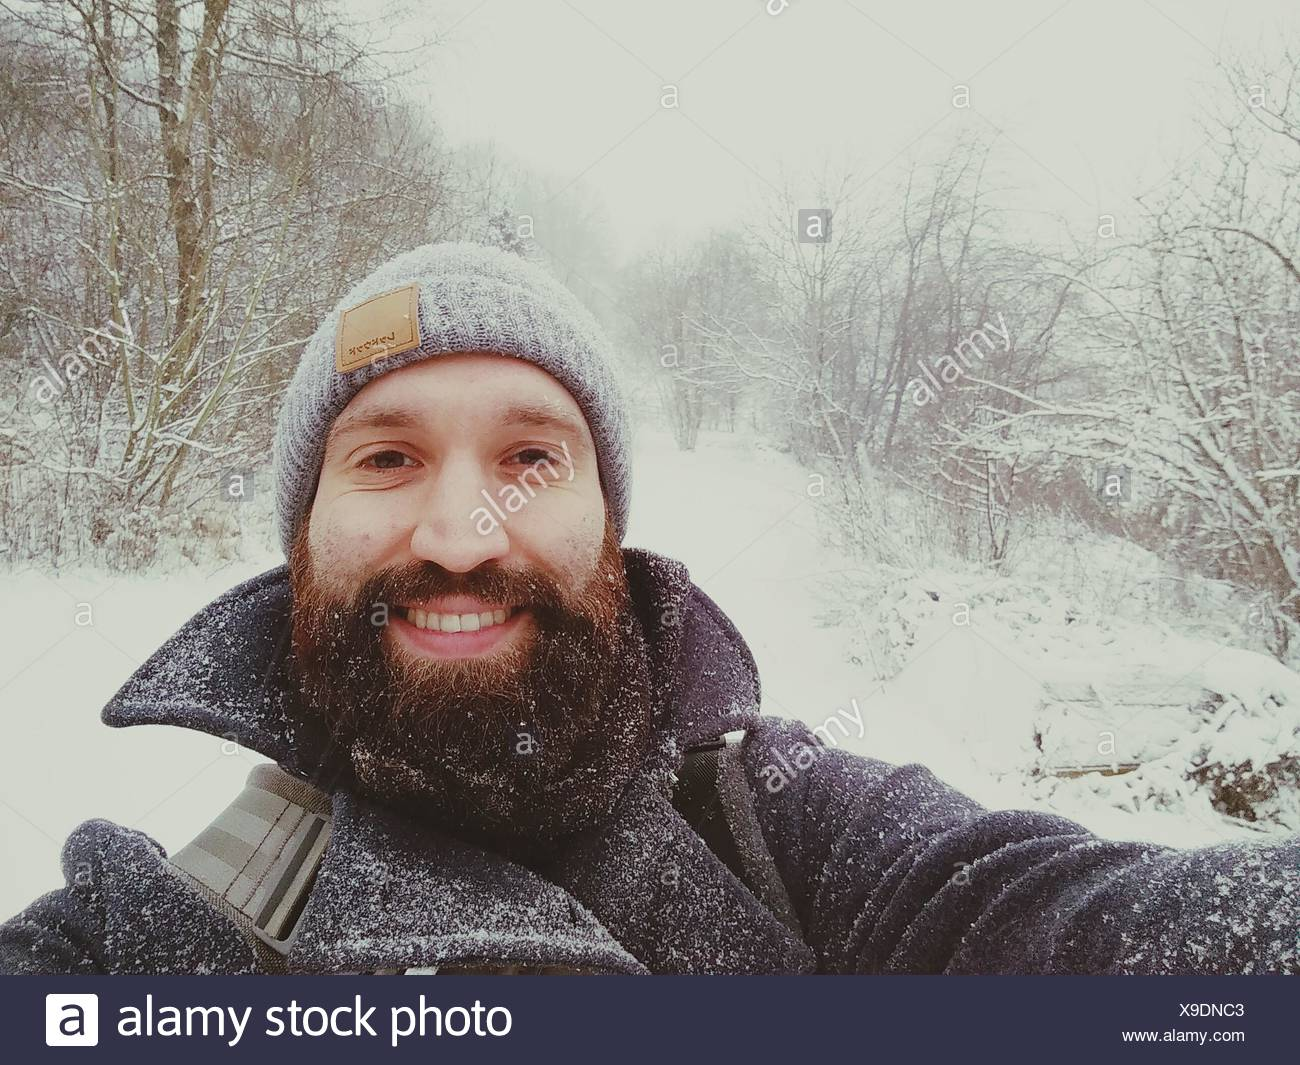 Portrait Of A Cheerful Young Man In Snow - Stock Image